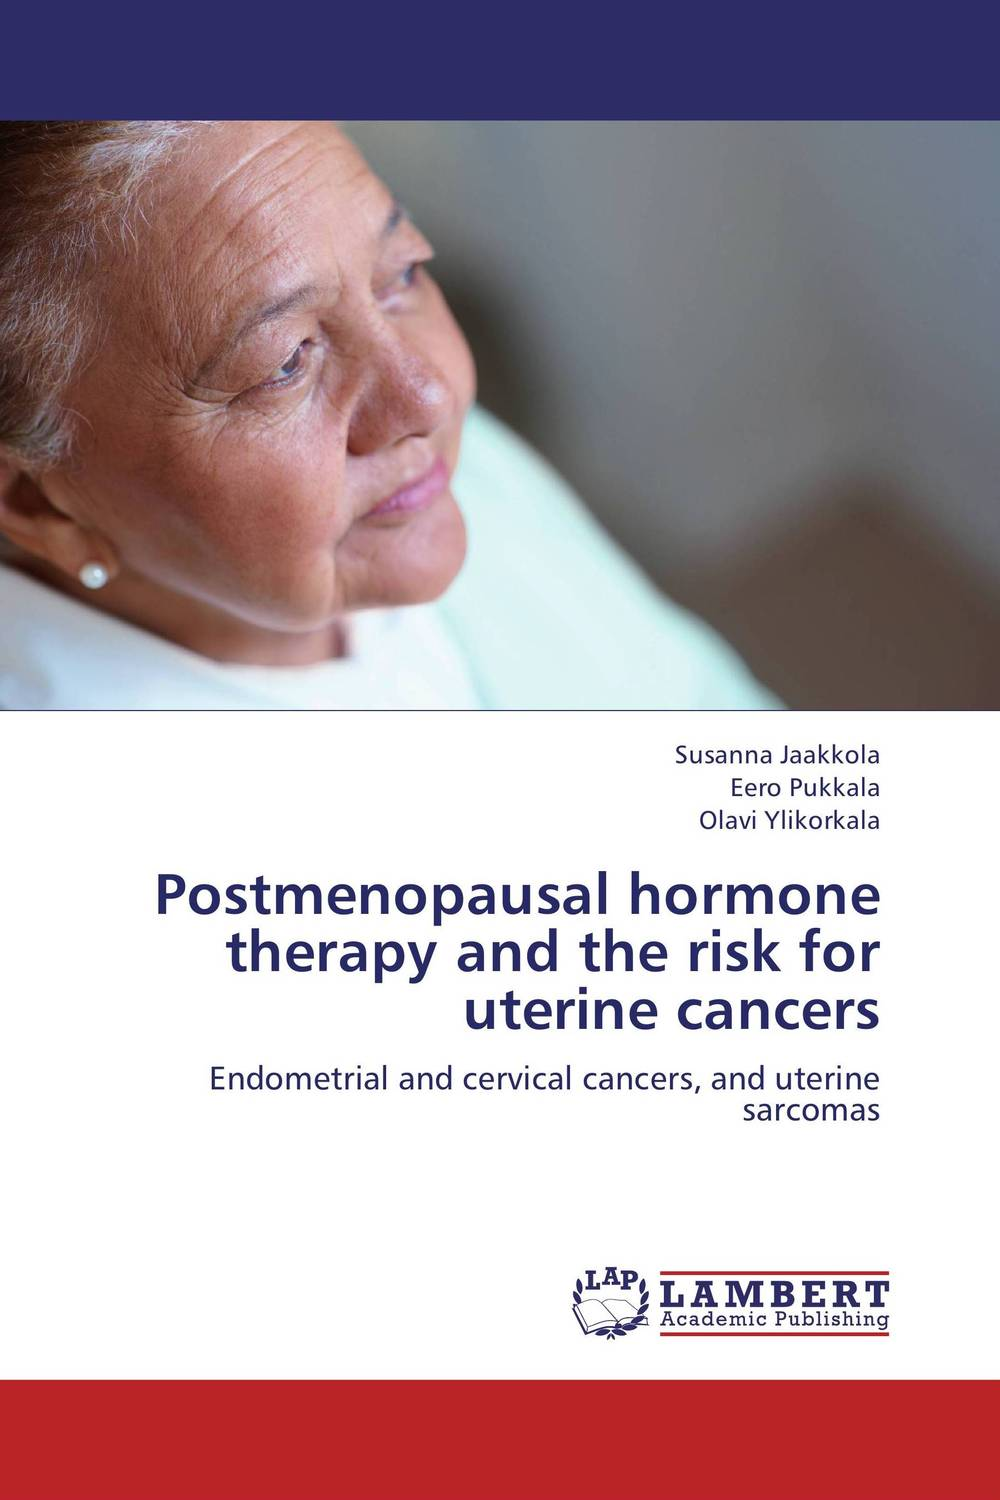 Фото Postmenopausal hormone therapy and the risk for uterine cancers cervical cancer in amhara region in ethiopia